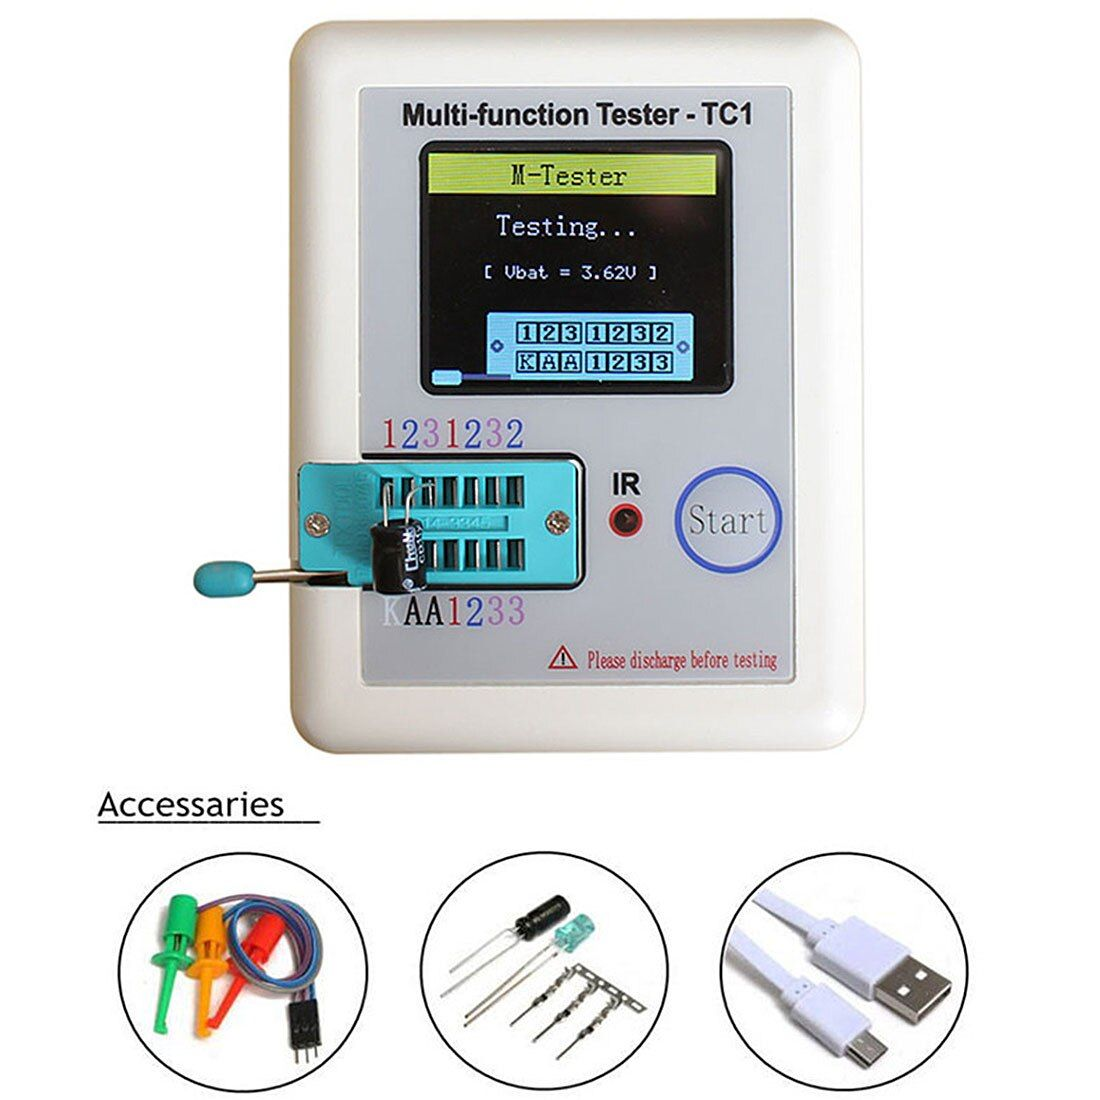 Pocketable Transistor Tester is The LCR - TC1 Full Color Graphics Display